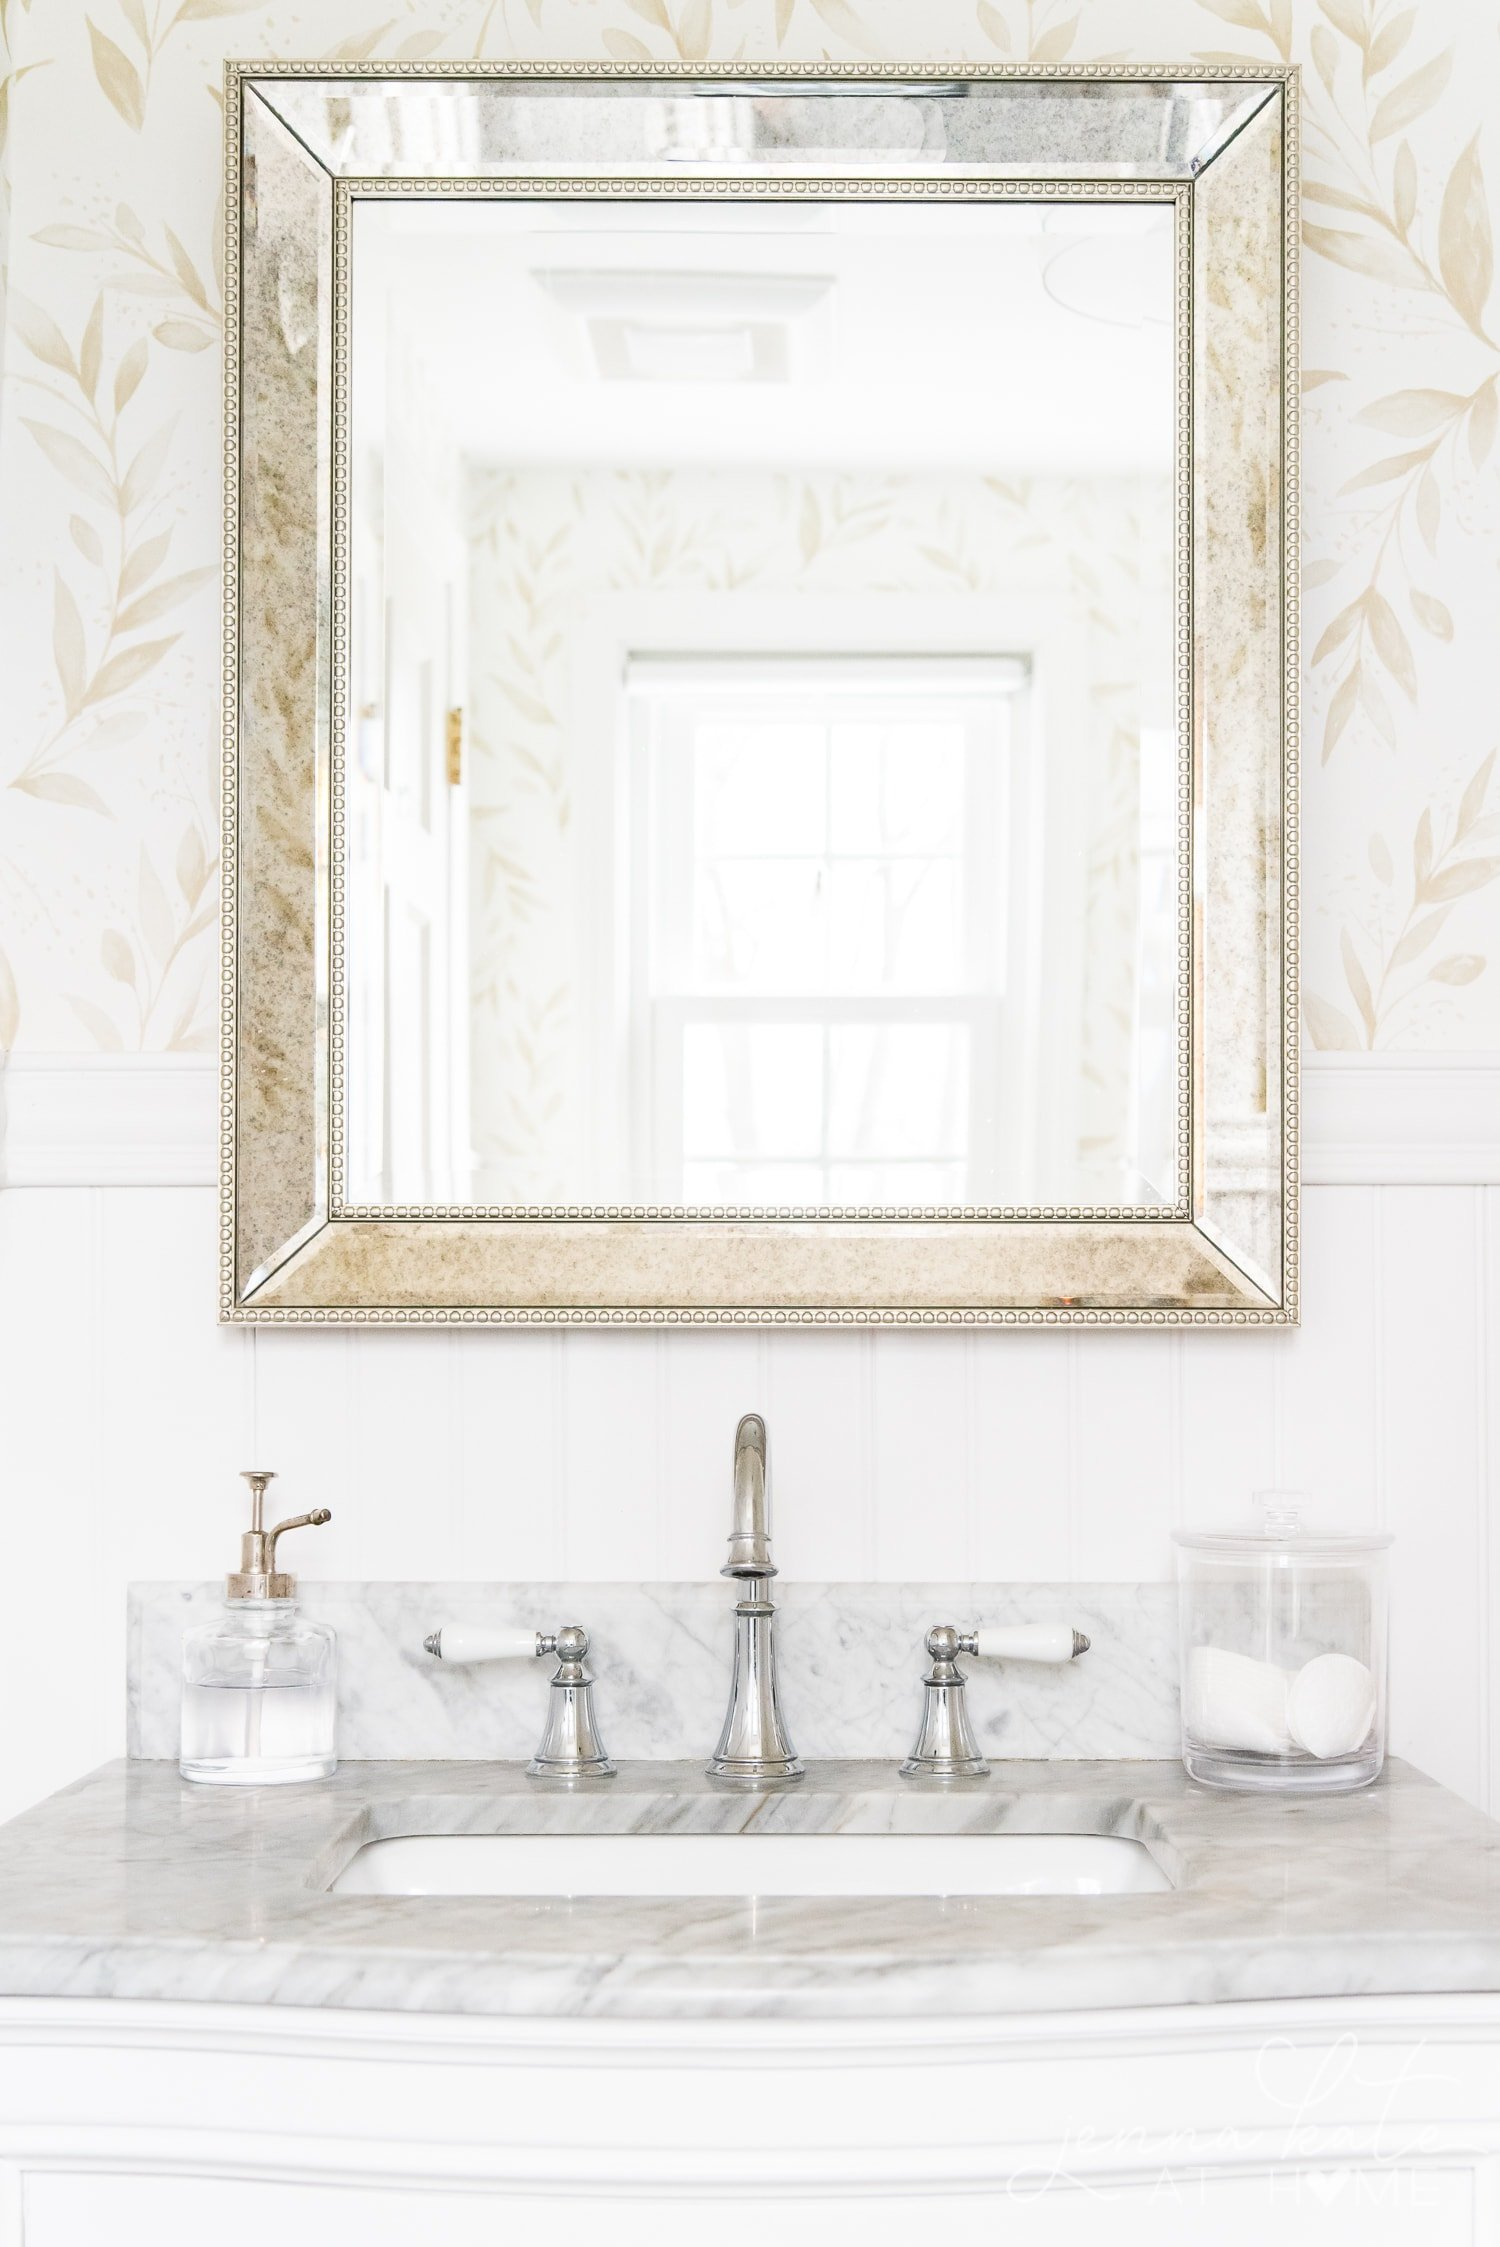 Mercury glass mirror reflecting beautiful floral wallpaper in bathroom